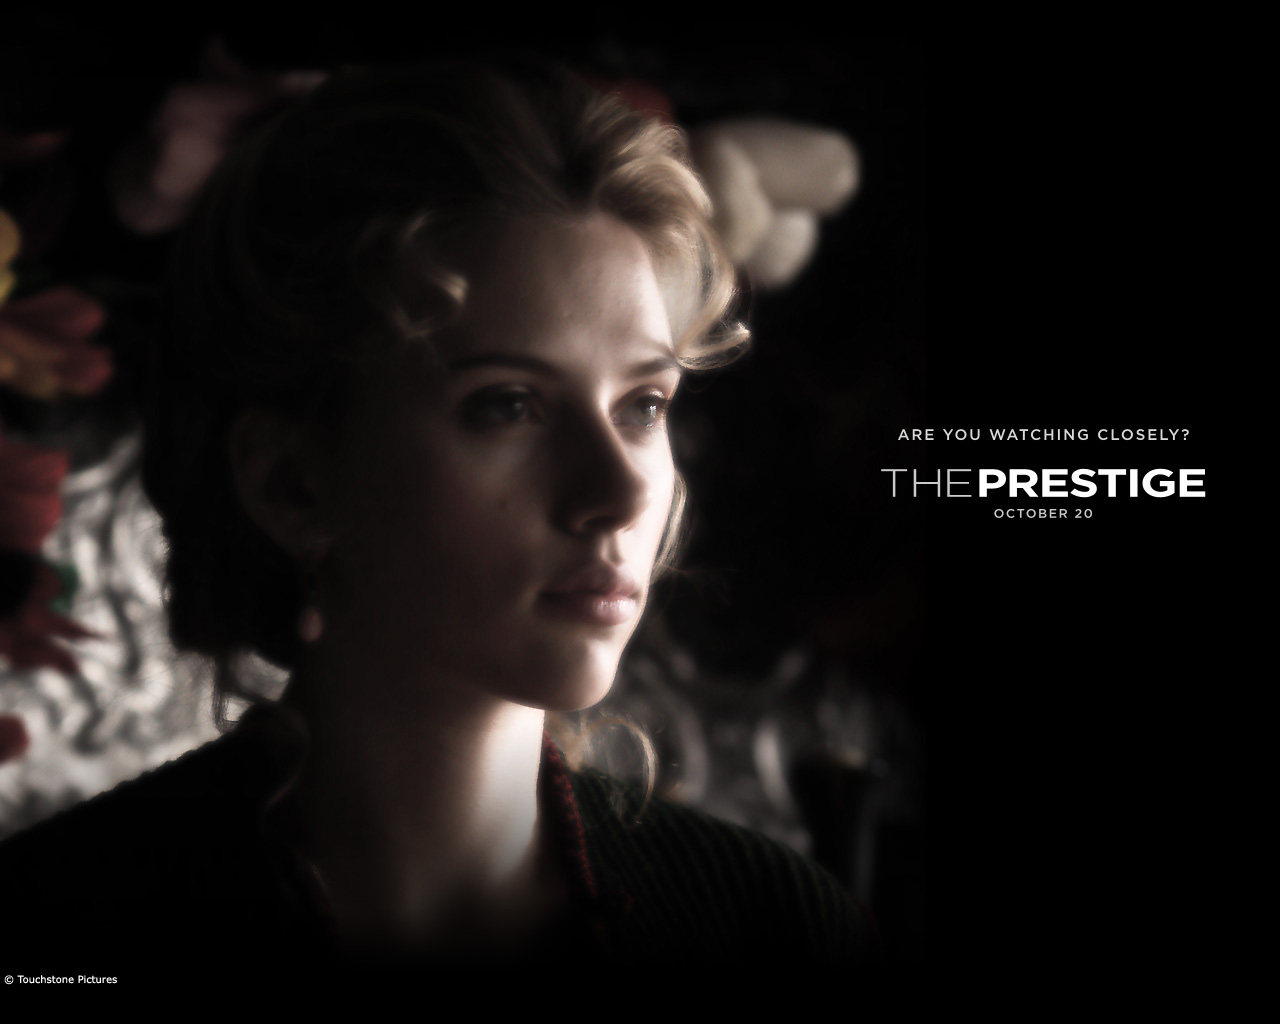 Scarlett Johansson The Prestigue Wallpaper